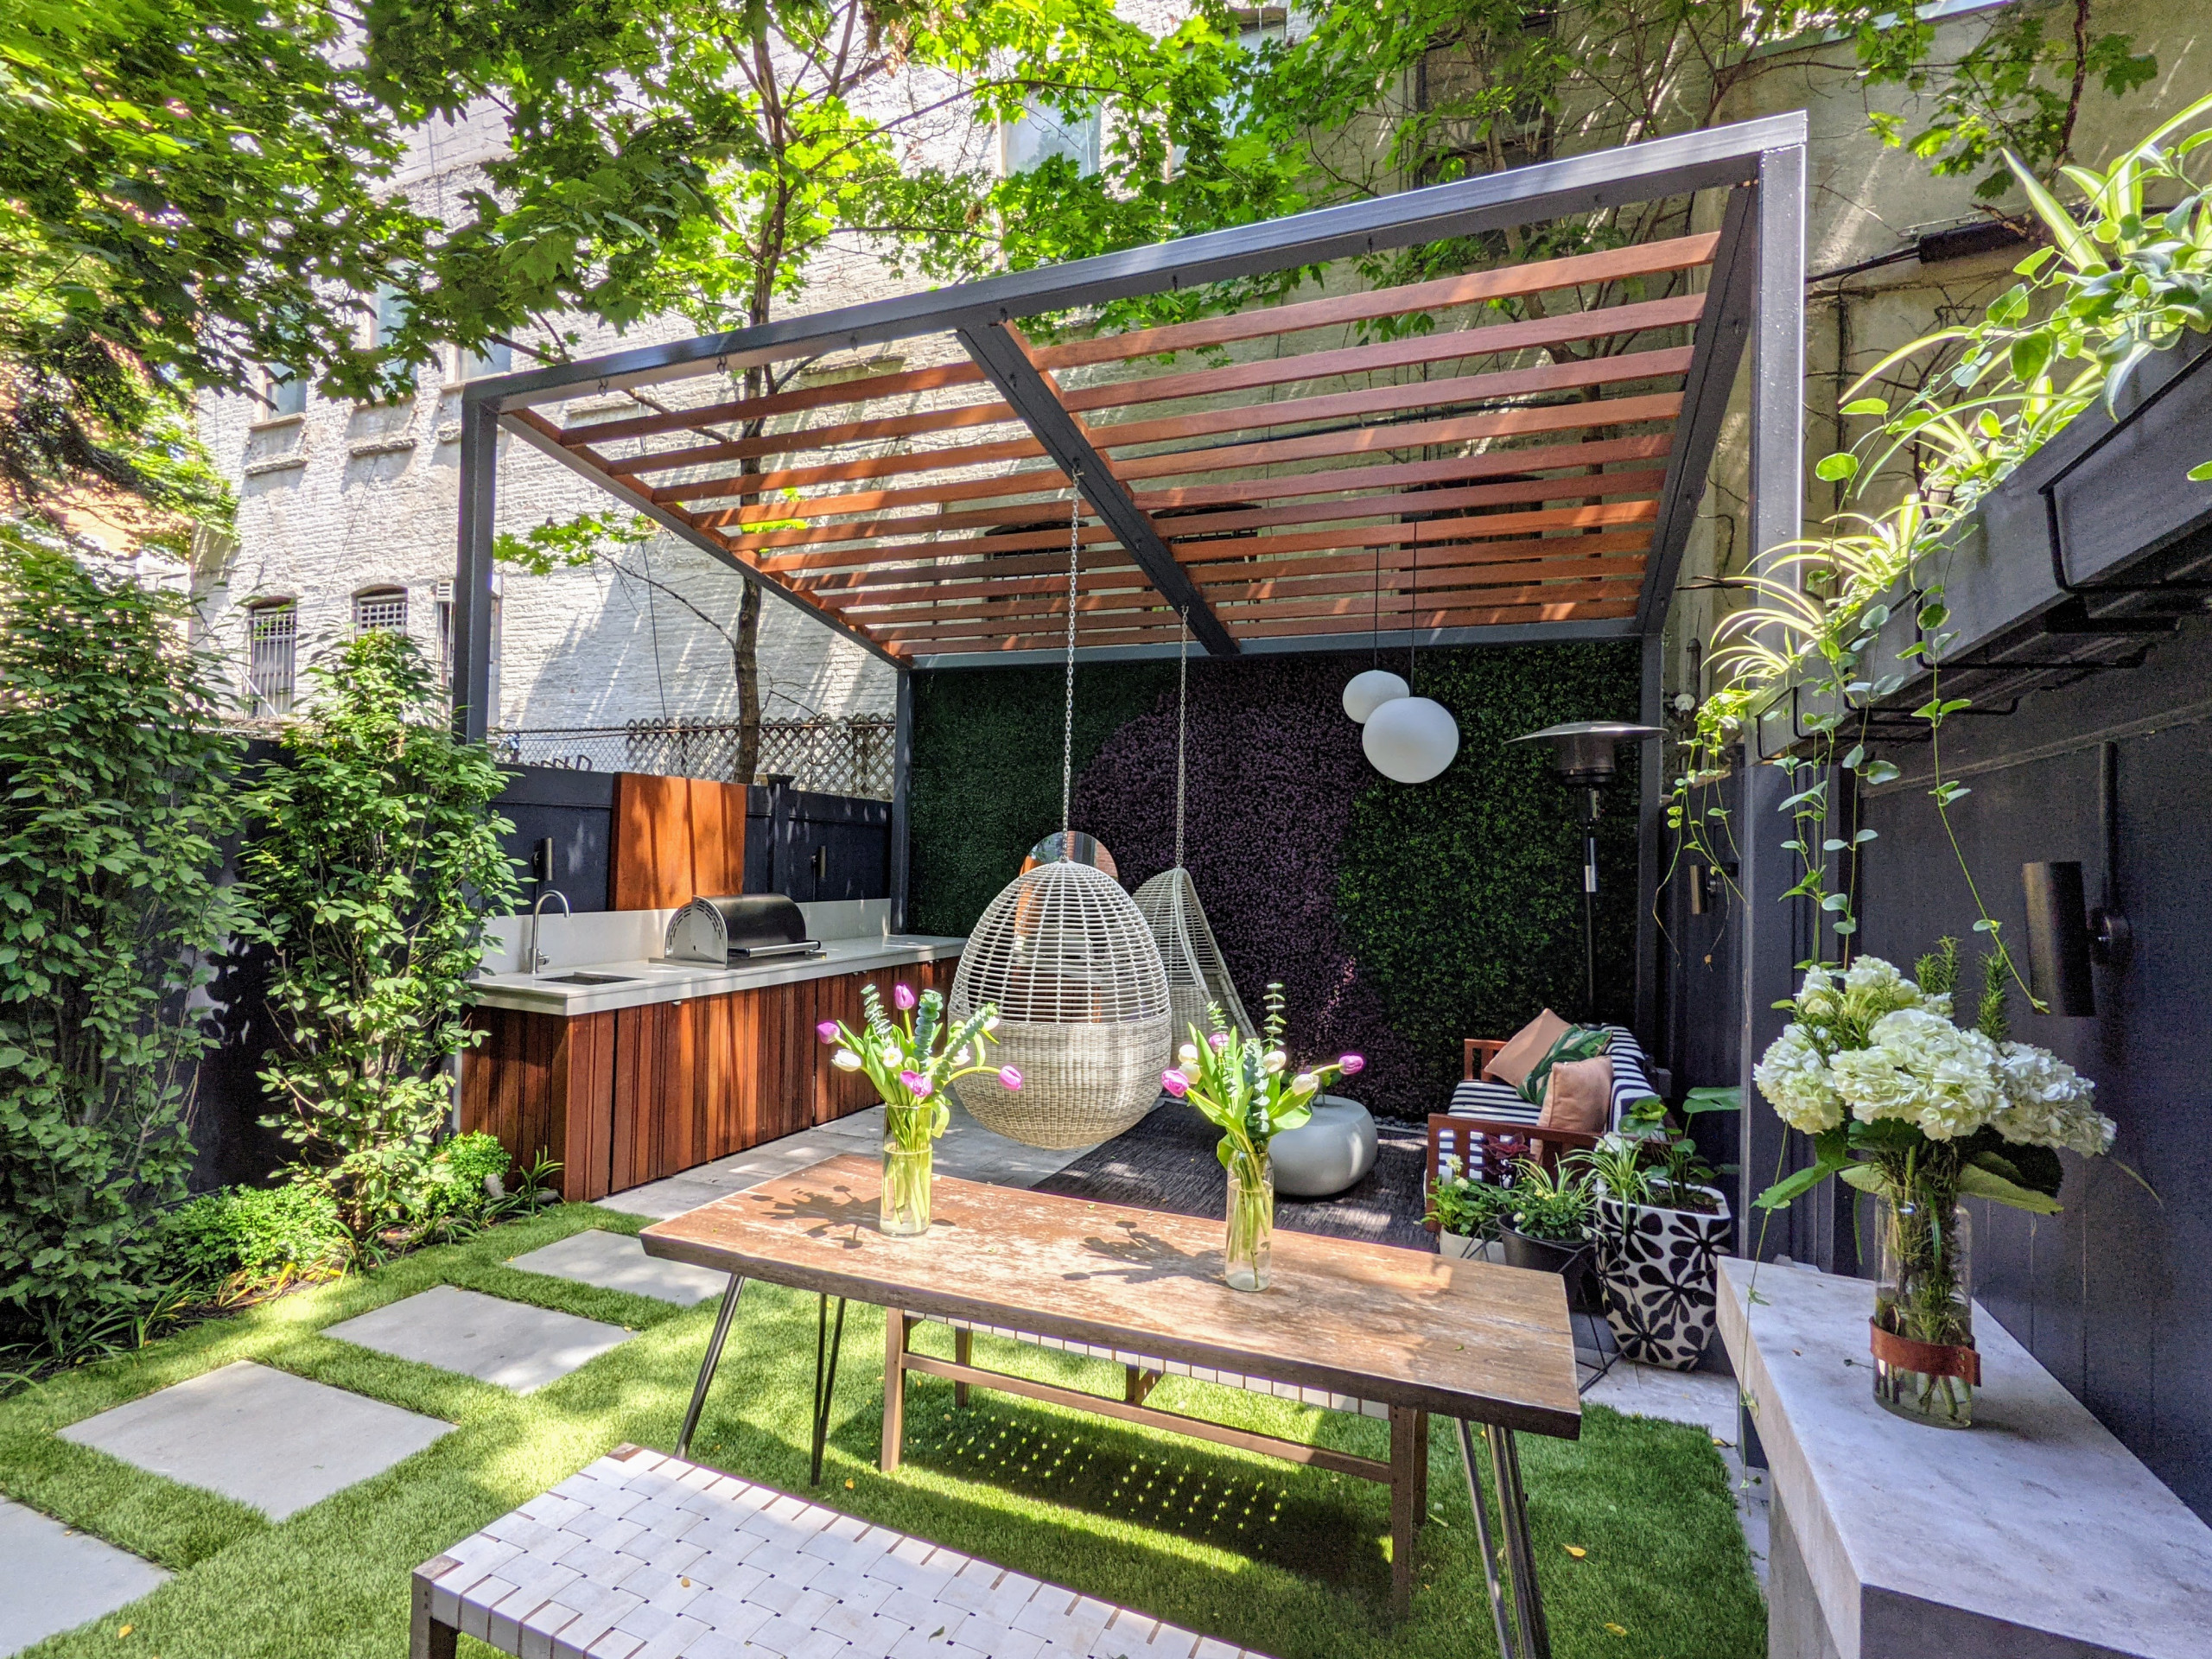 Pergola and kitchen are focal items.